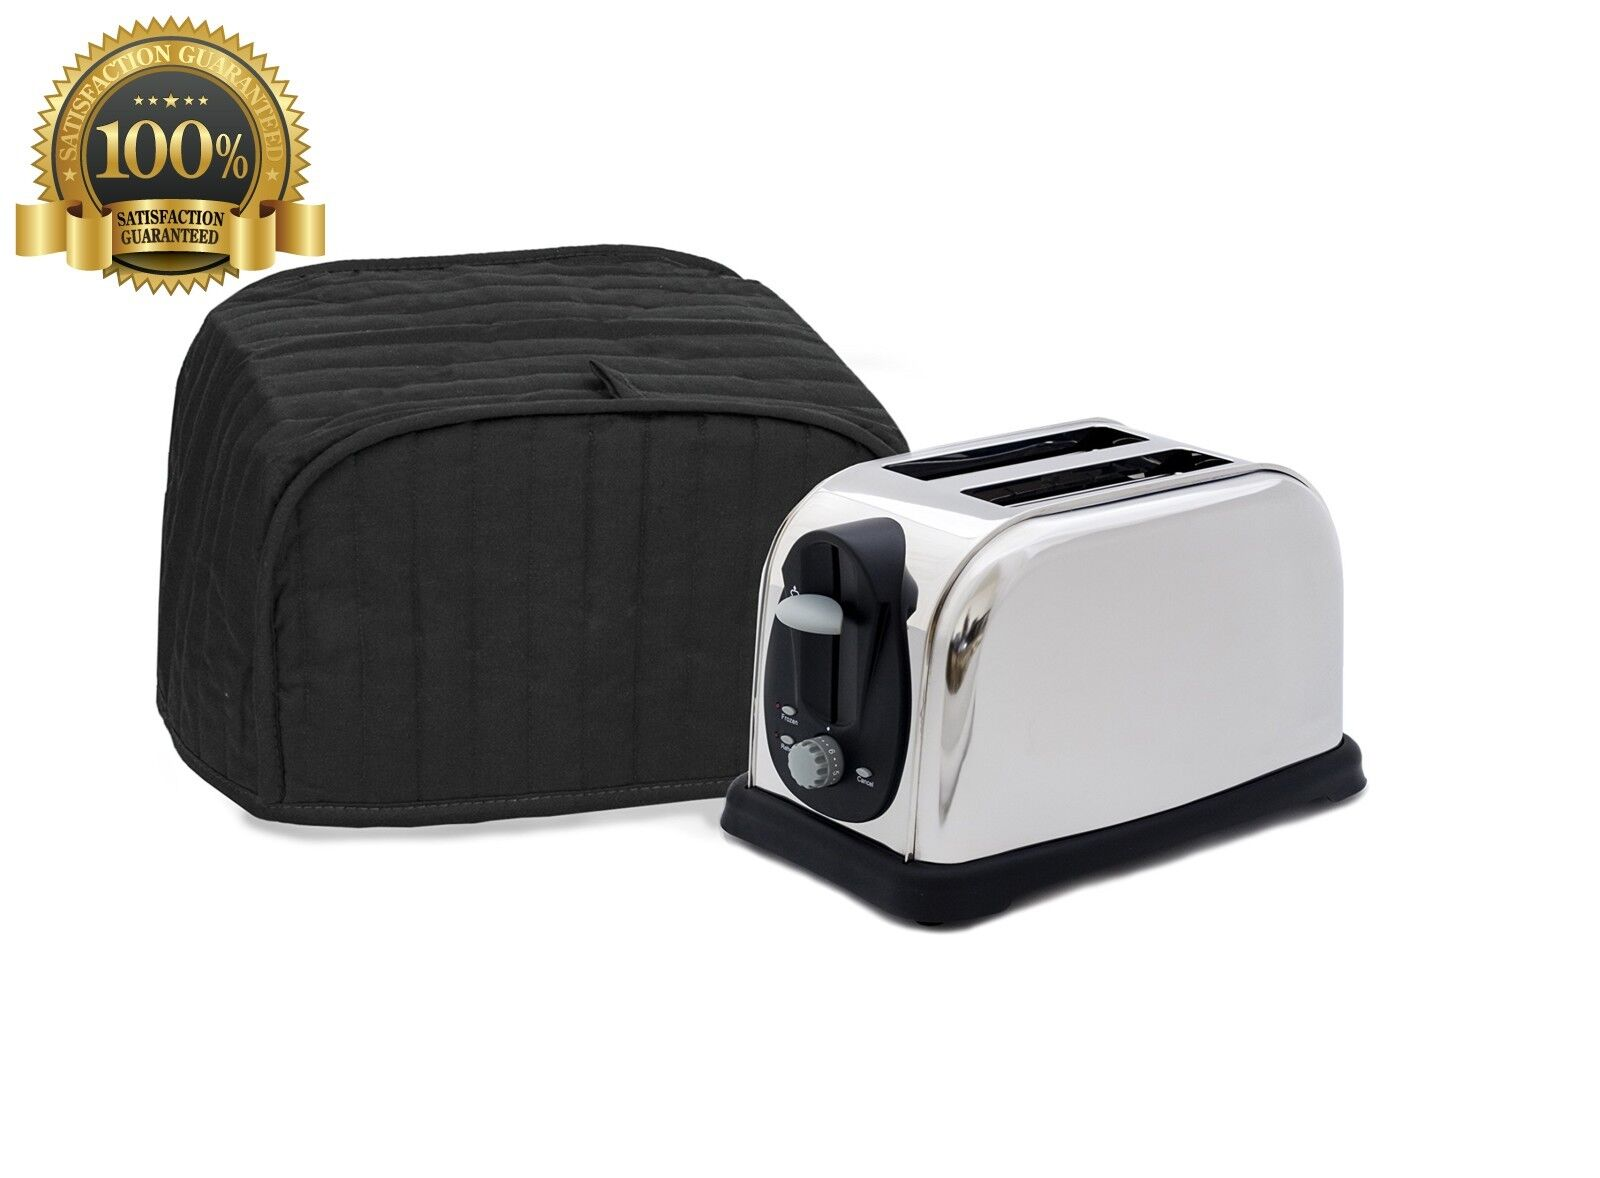 RITZ Polyester / Cotton Quilted Two Slice Toaster Appliance